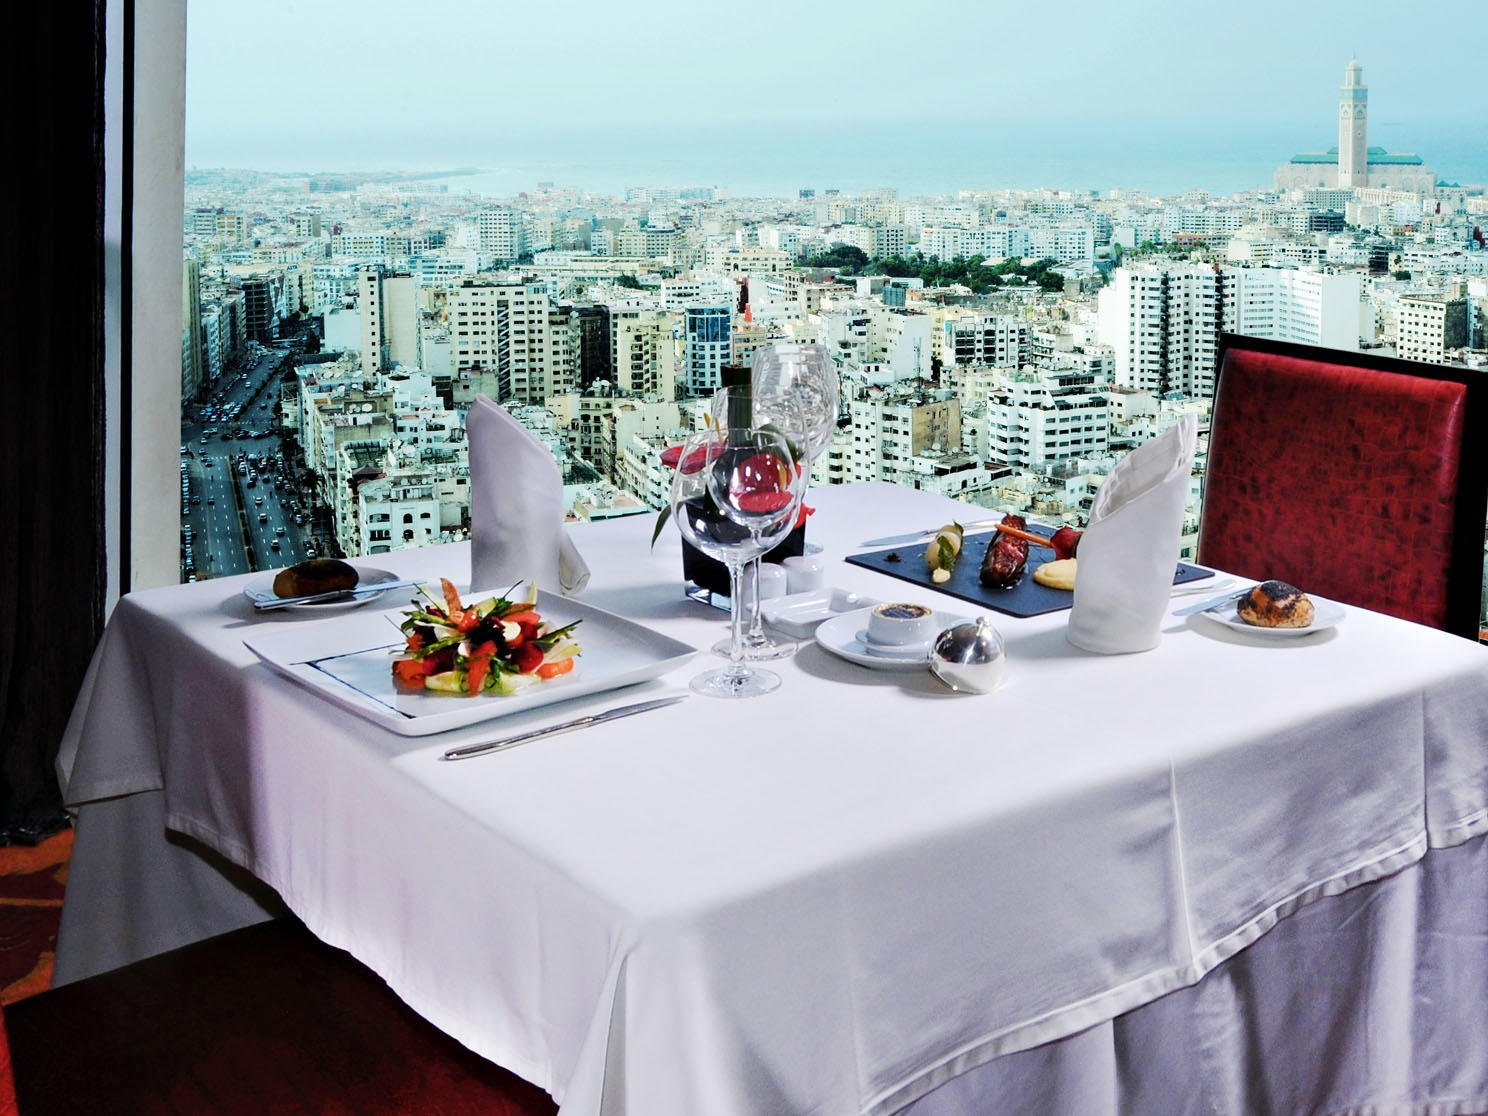 Restaurant at Kenzi Tower Hotel in Casablanca, Morocco